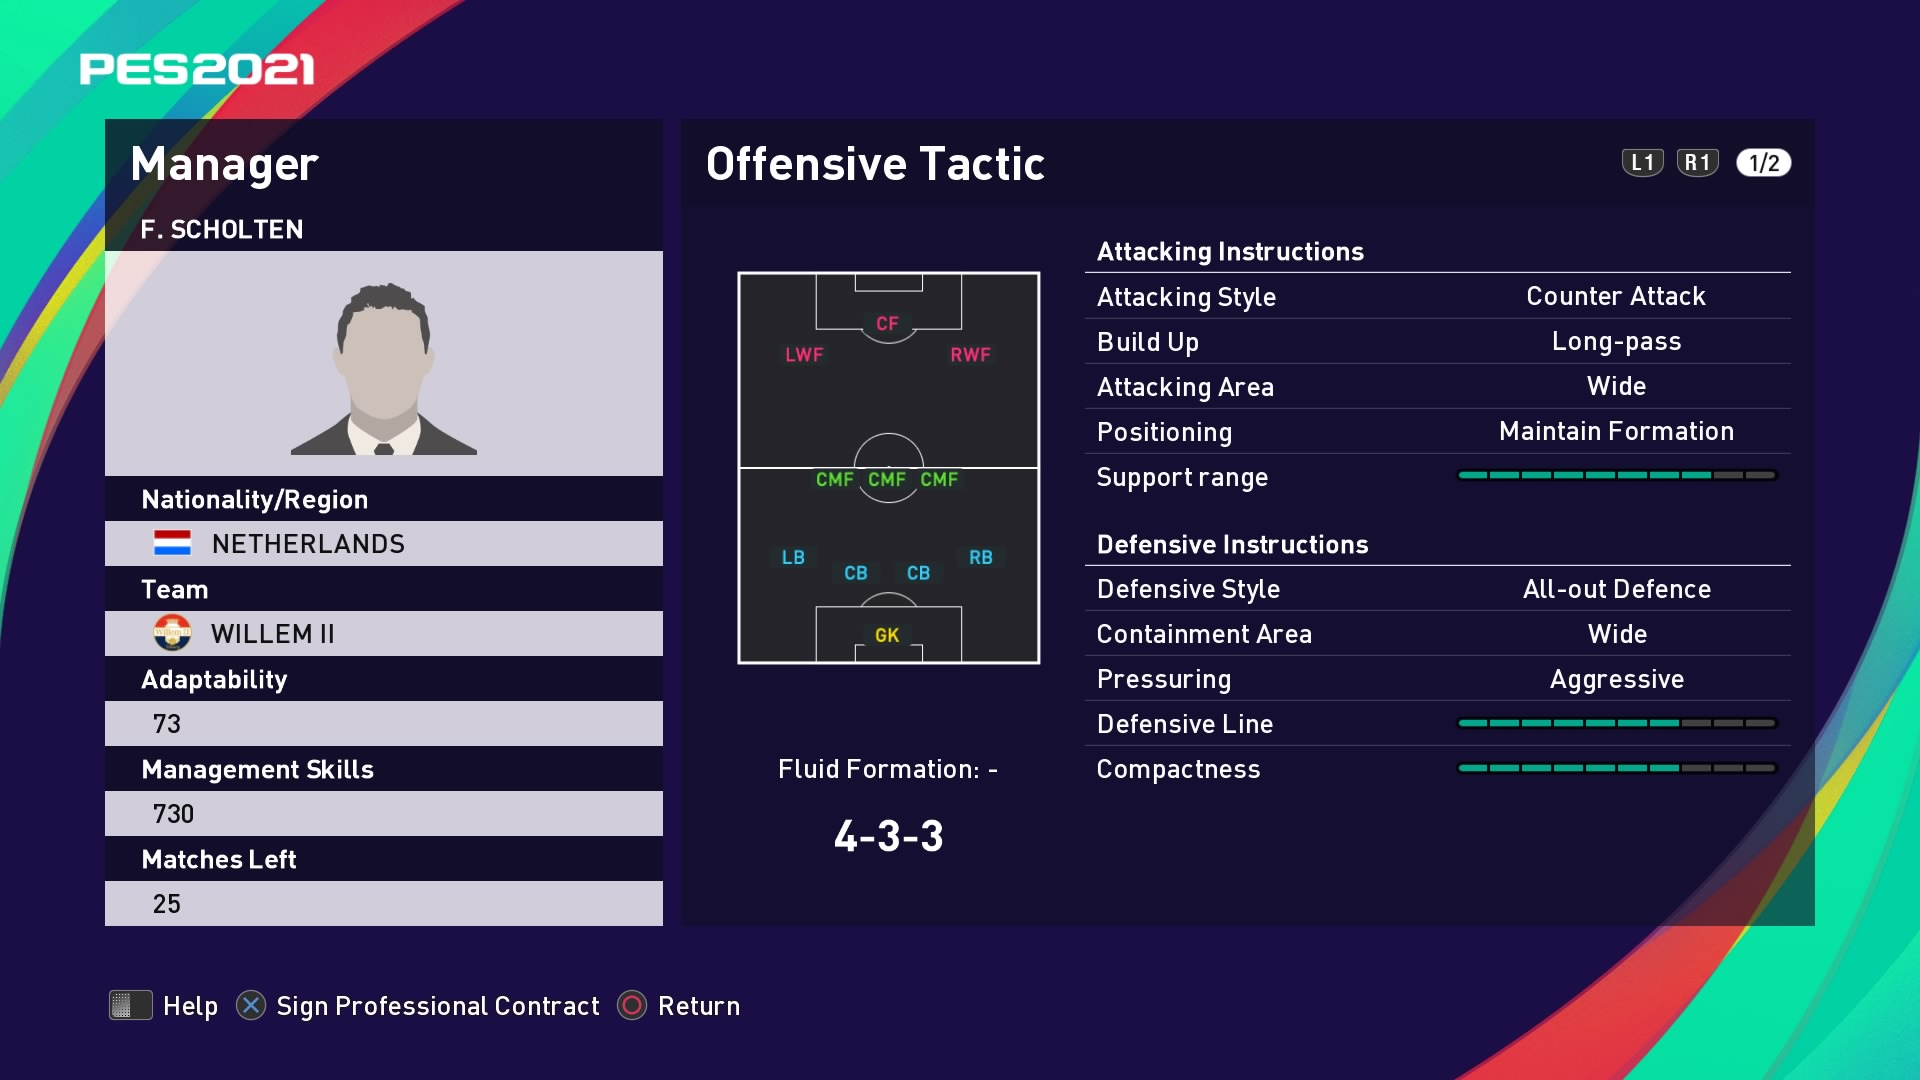 F. Scholten (Adrie Koster) Offensive Tactic in PES 2021 myClub